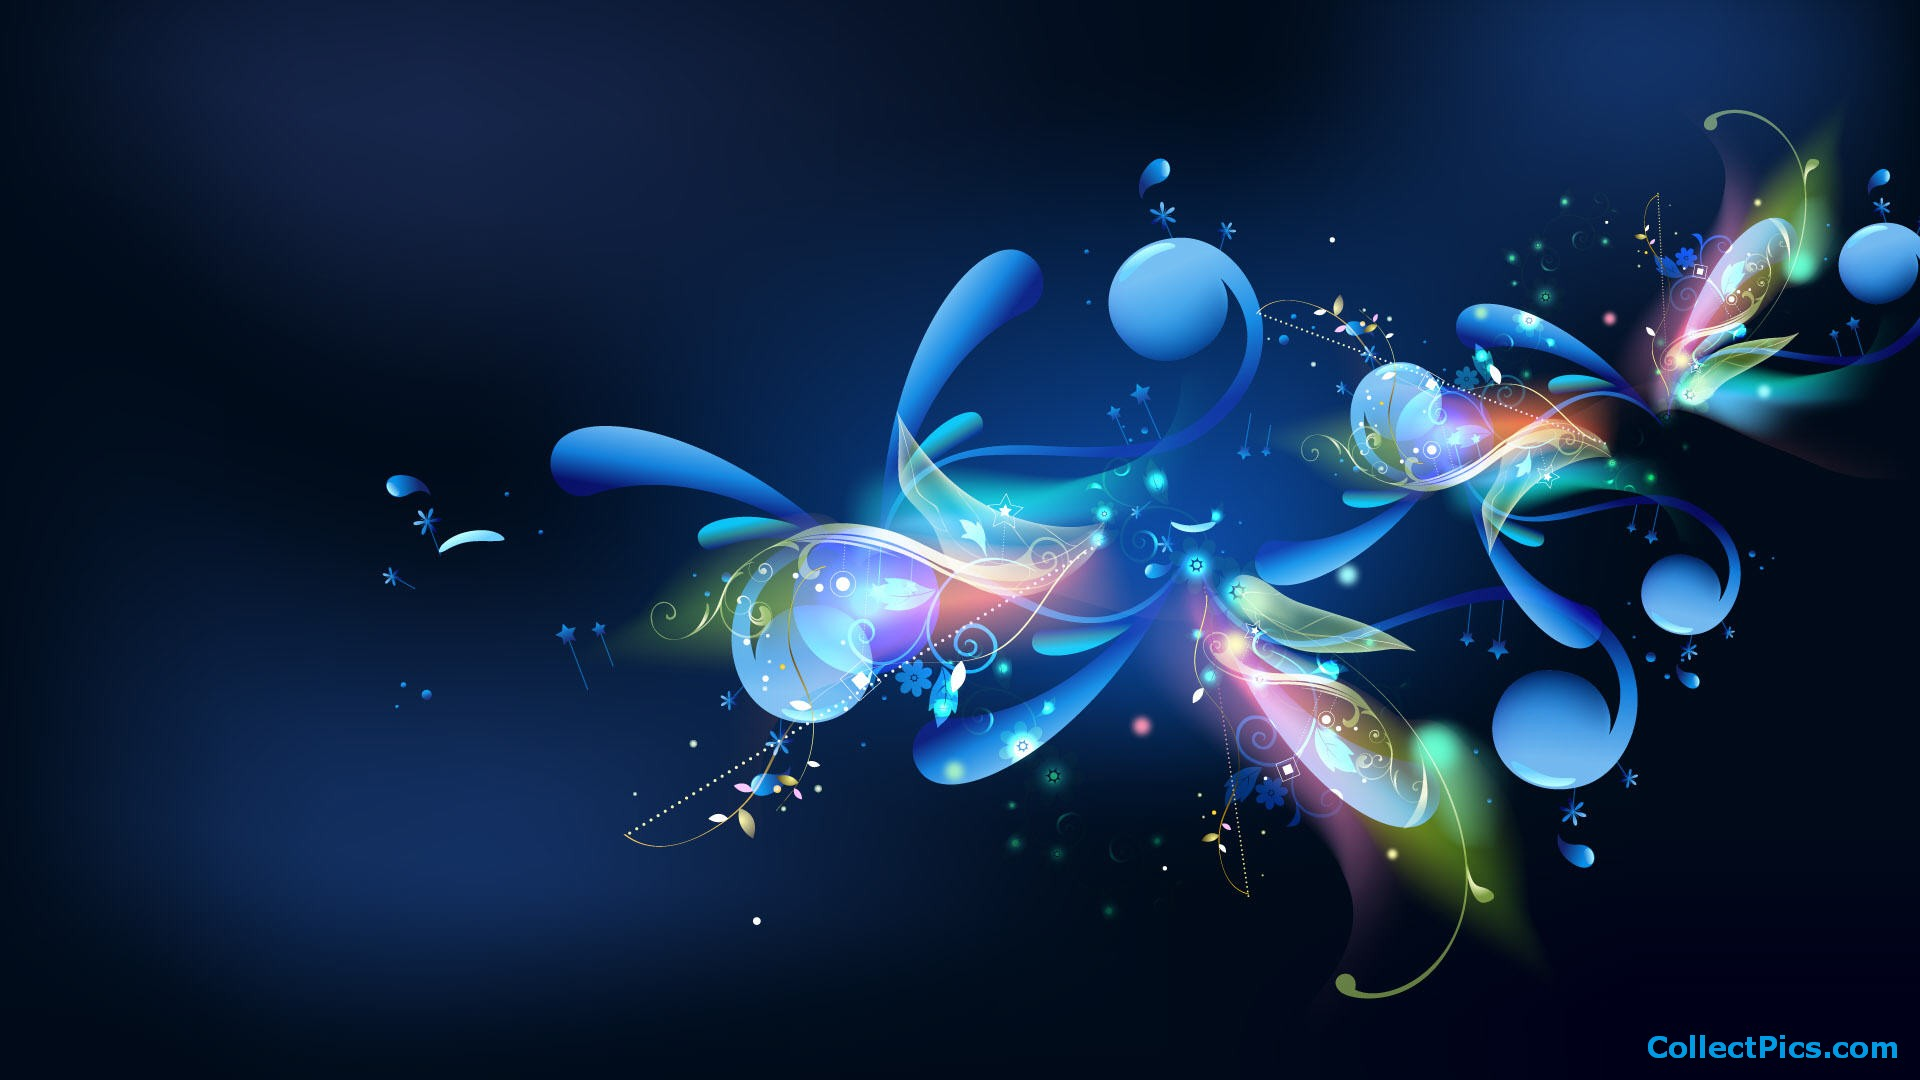 WWW HD Background Wallpaper Com